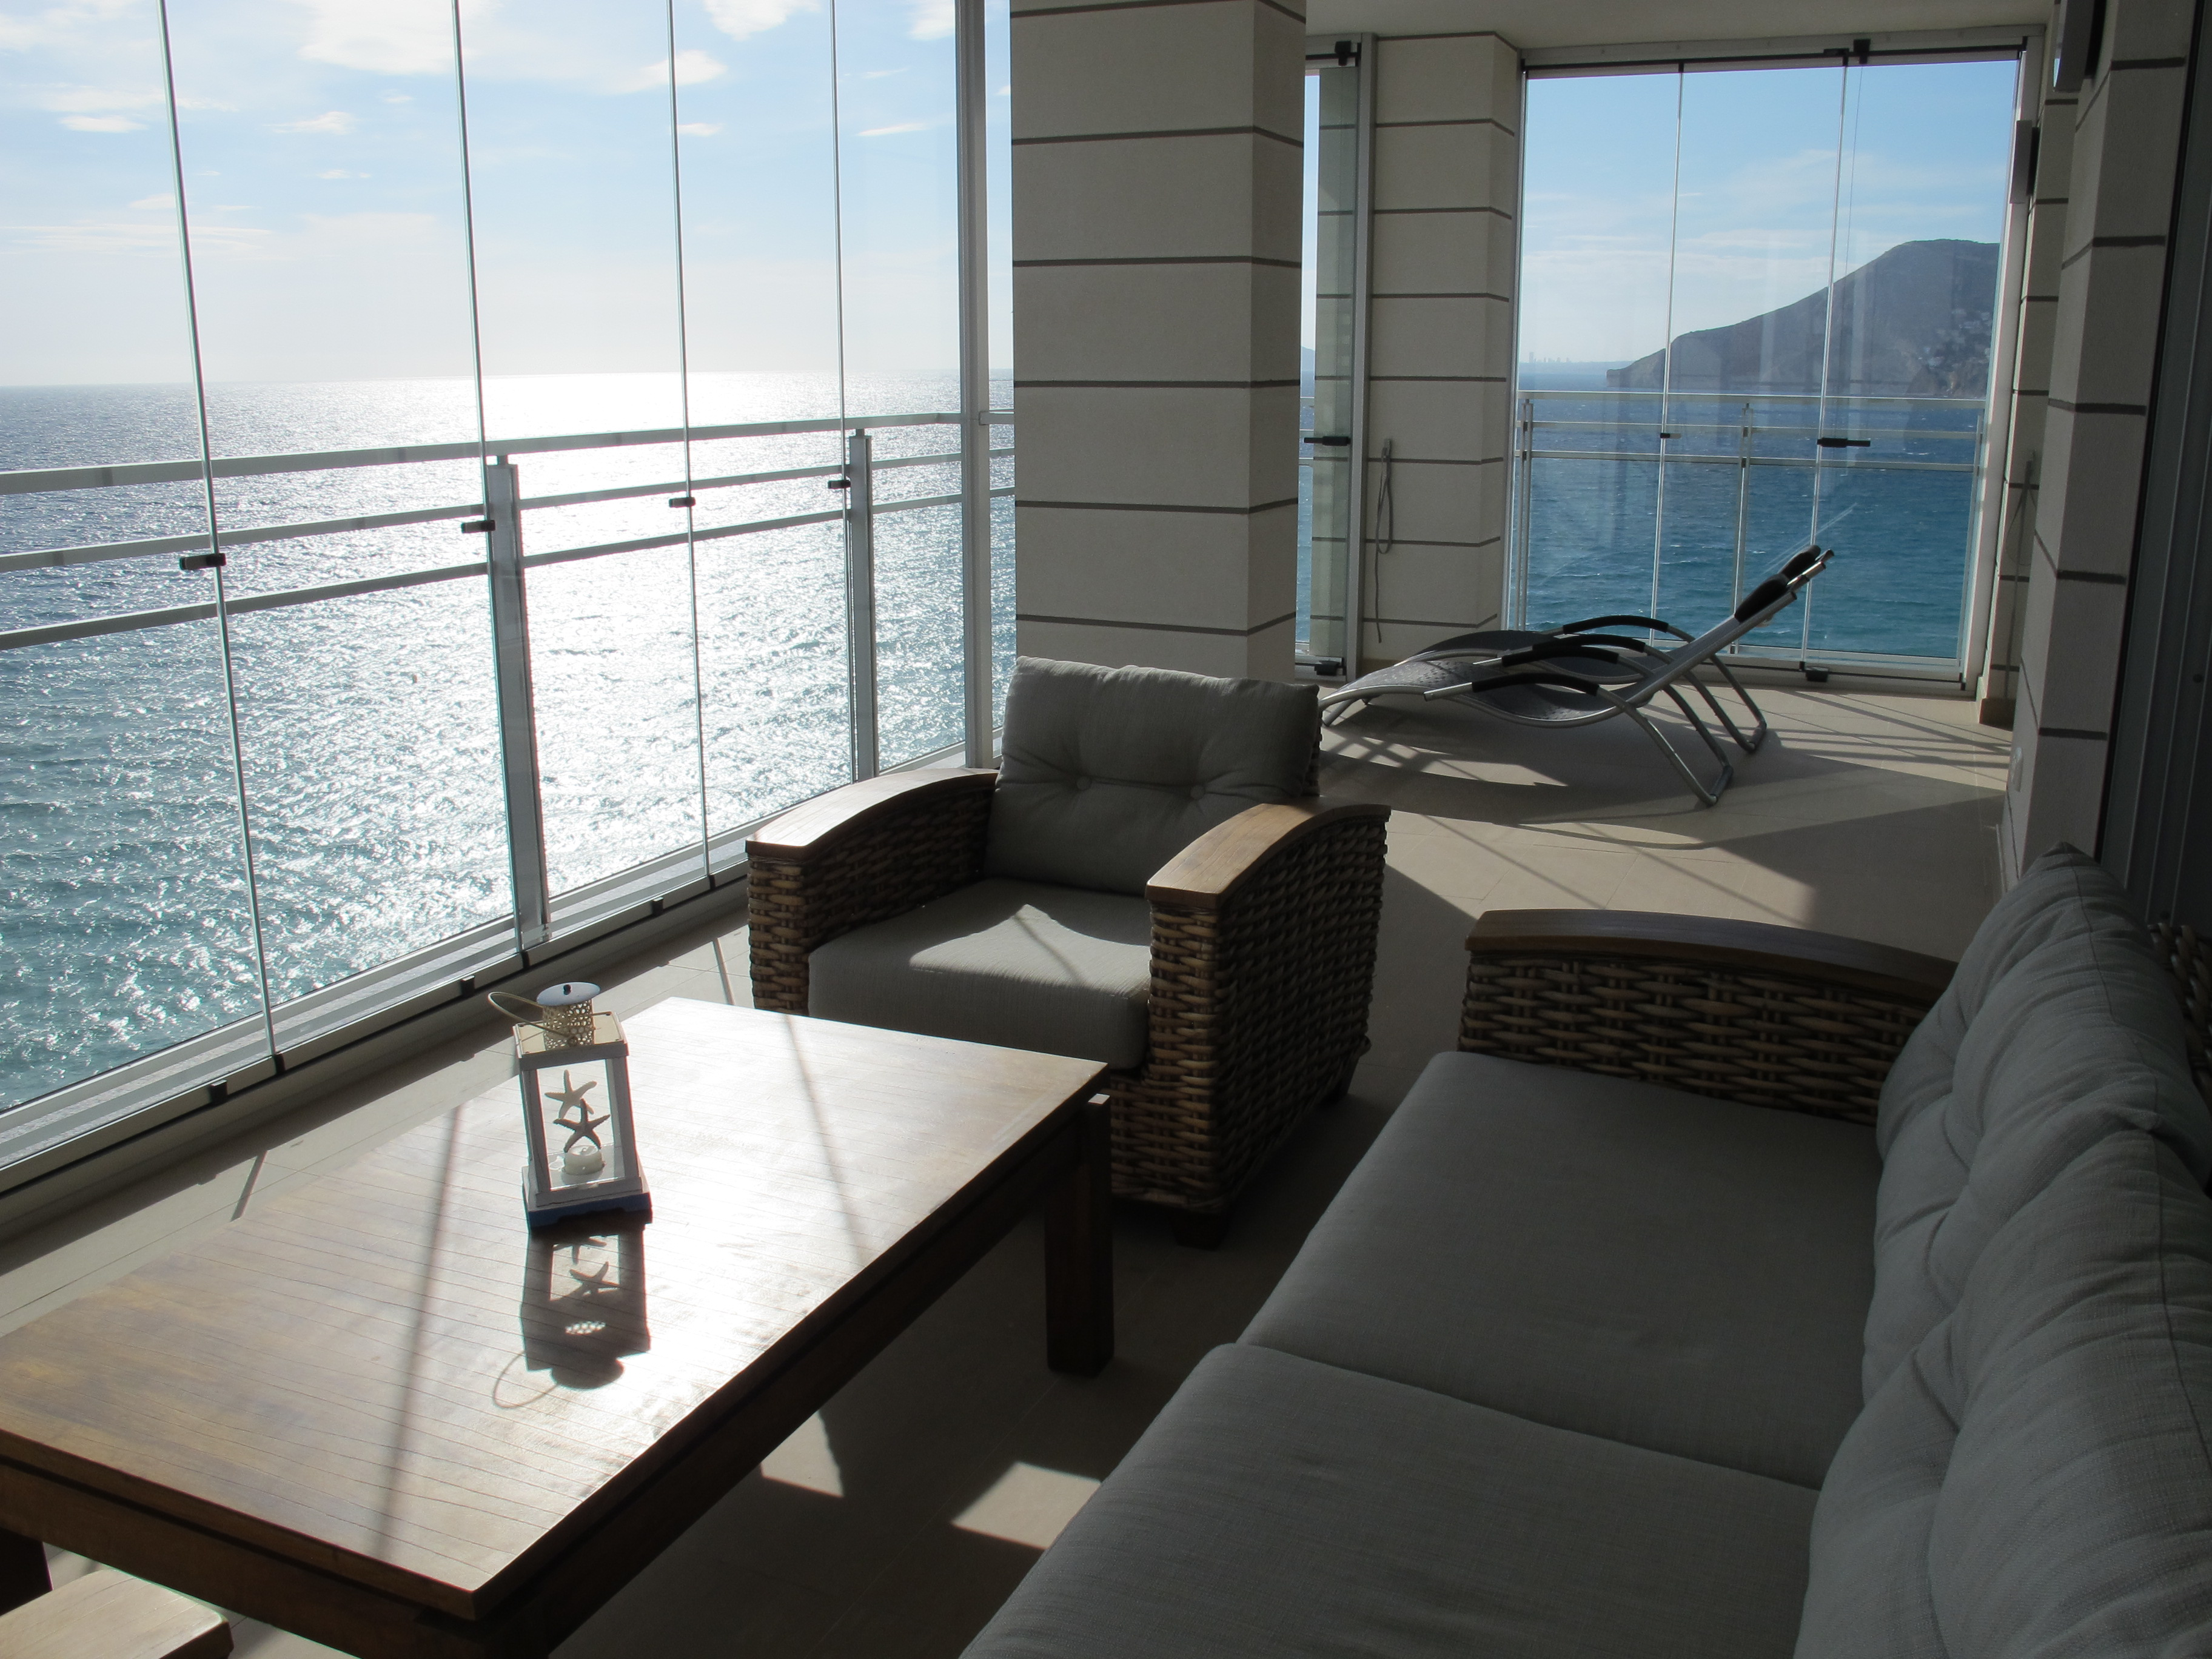 Apartment for rent in Calpe